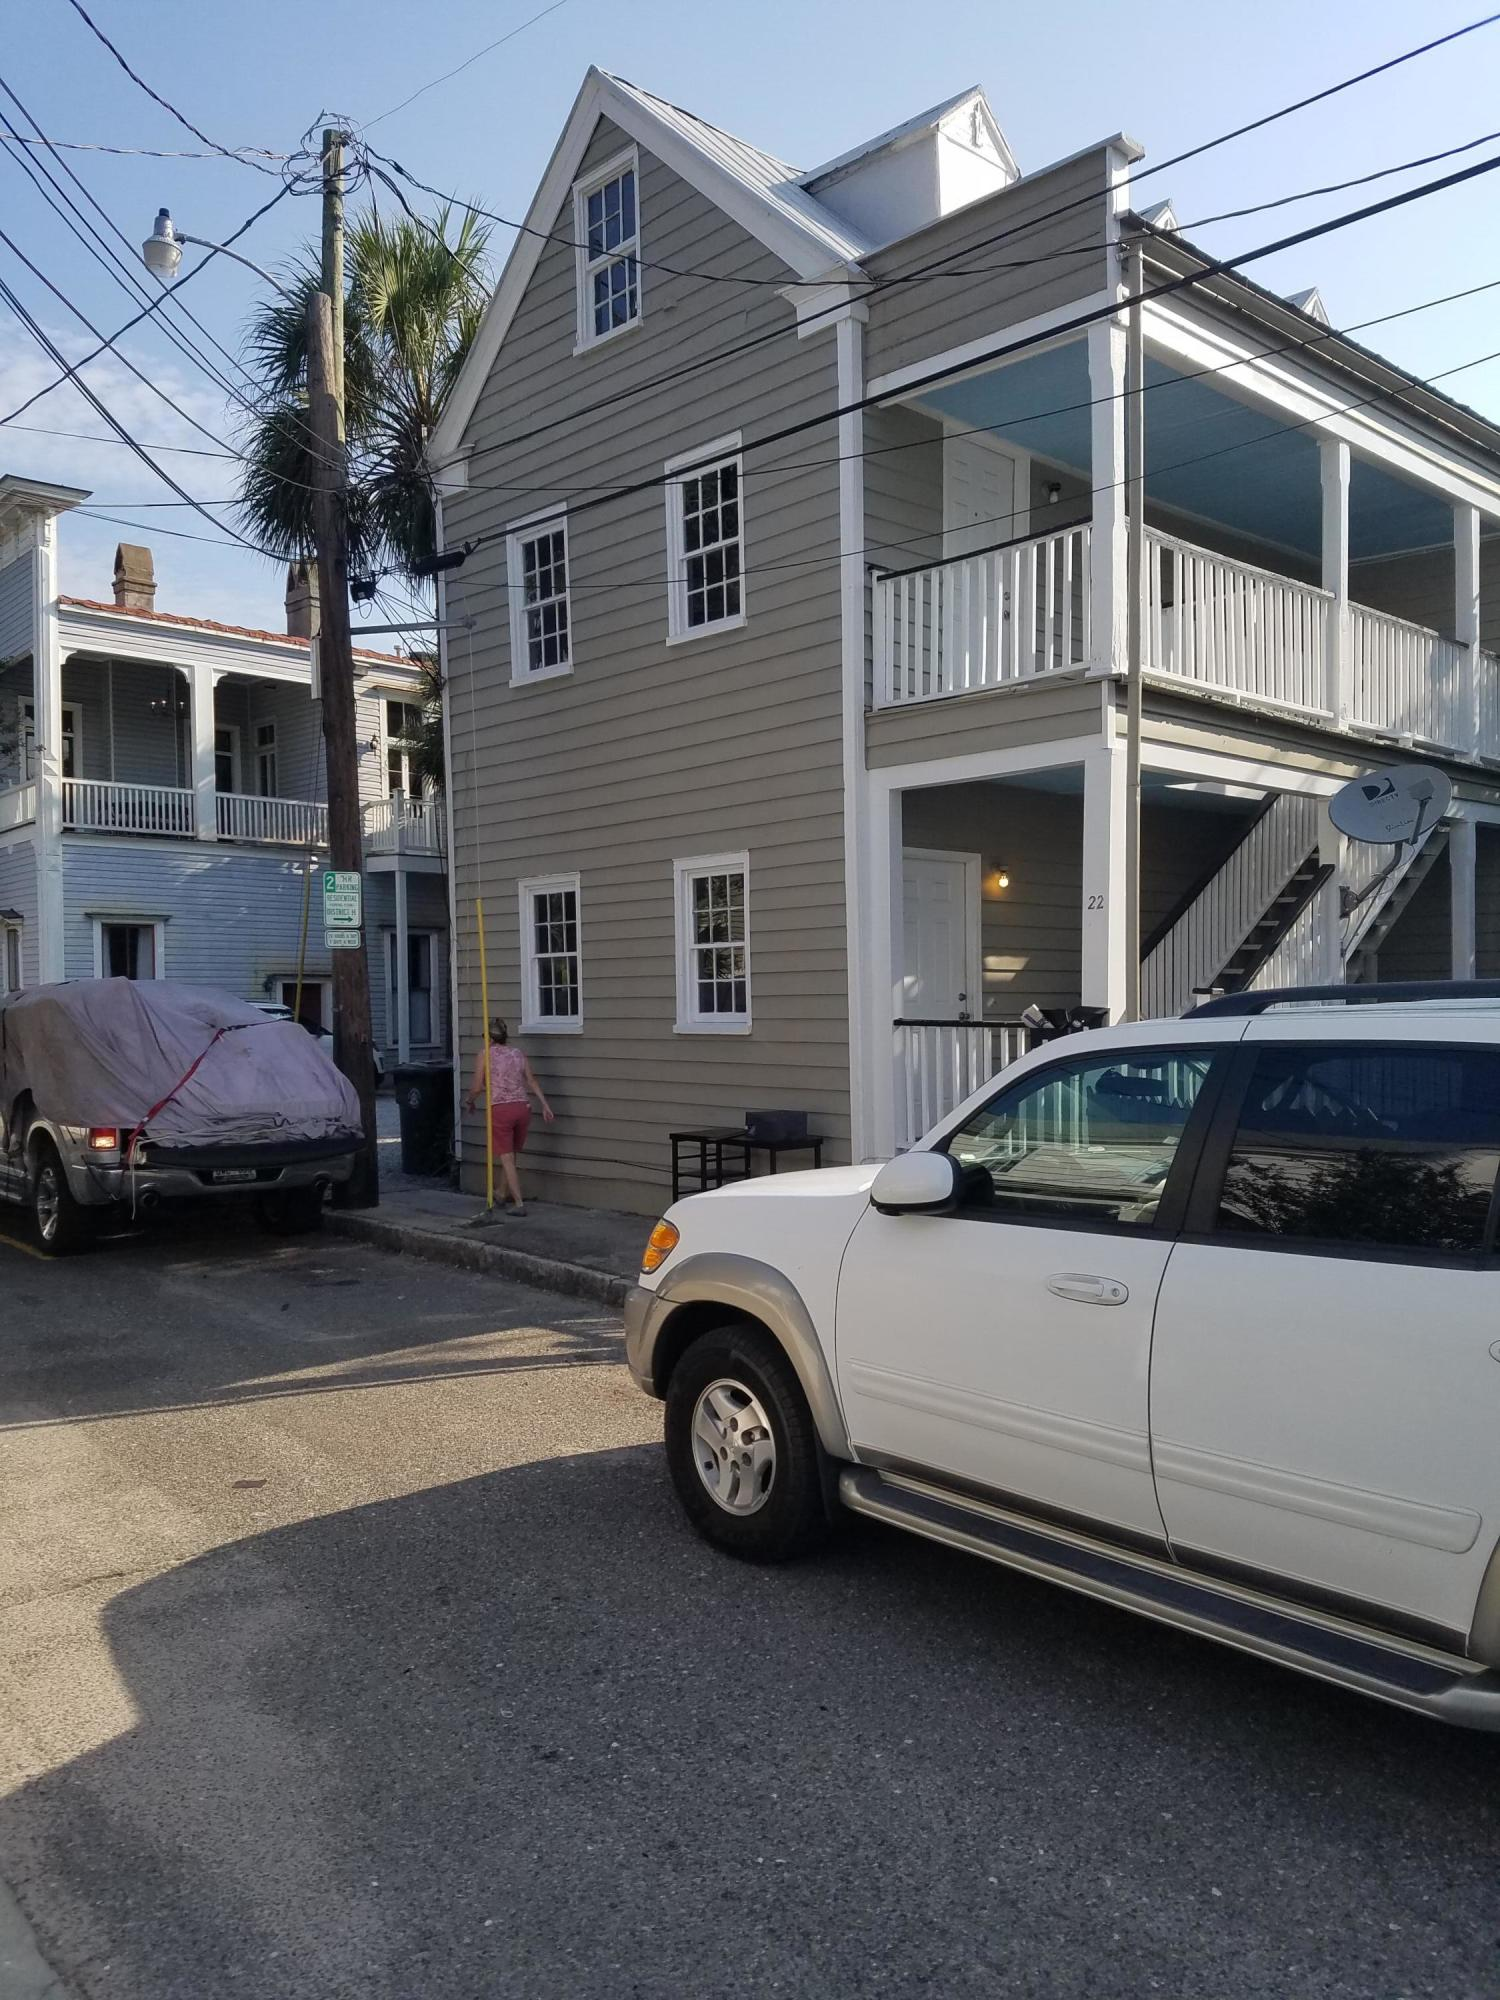 22 Sires Street, Charleston, 29403, ,MultiFamily,For Sale,Sires,21012528